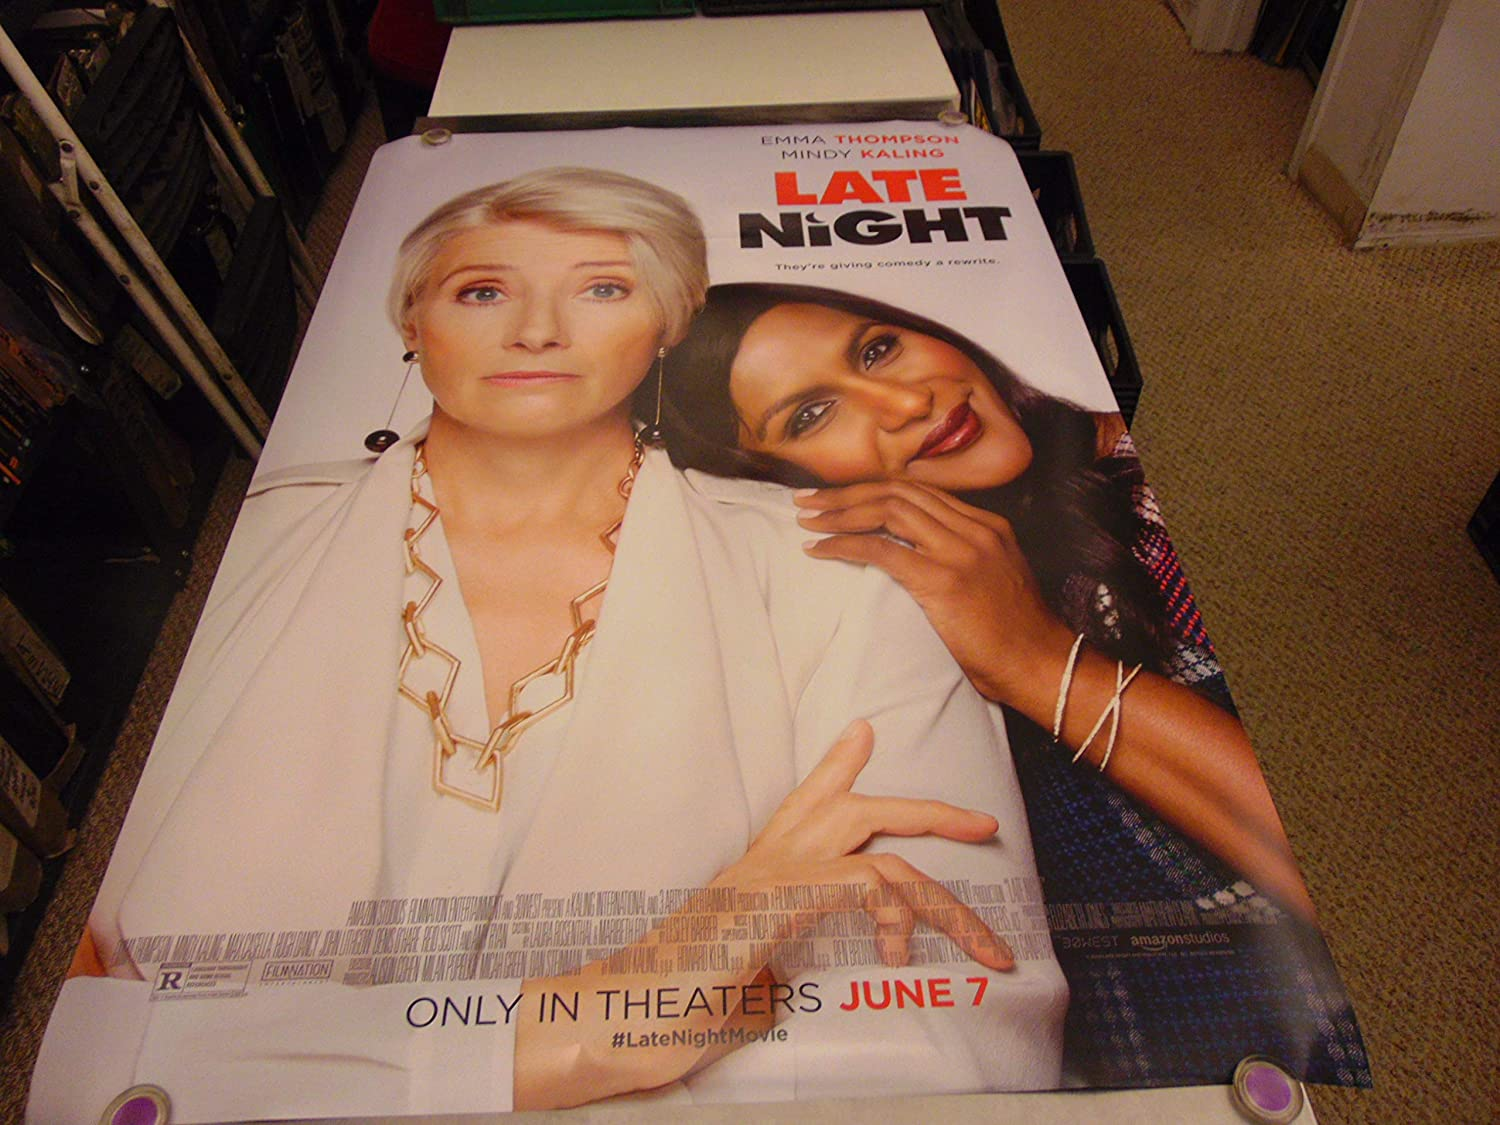 Late Night Orig U S One Sheet Movie Poster Emma Thompson Mindy Kaling At Amazon S Entertainment Collectibles Store